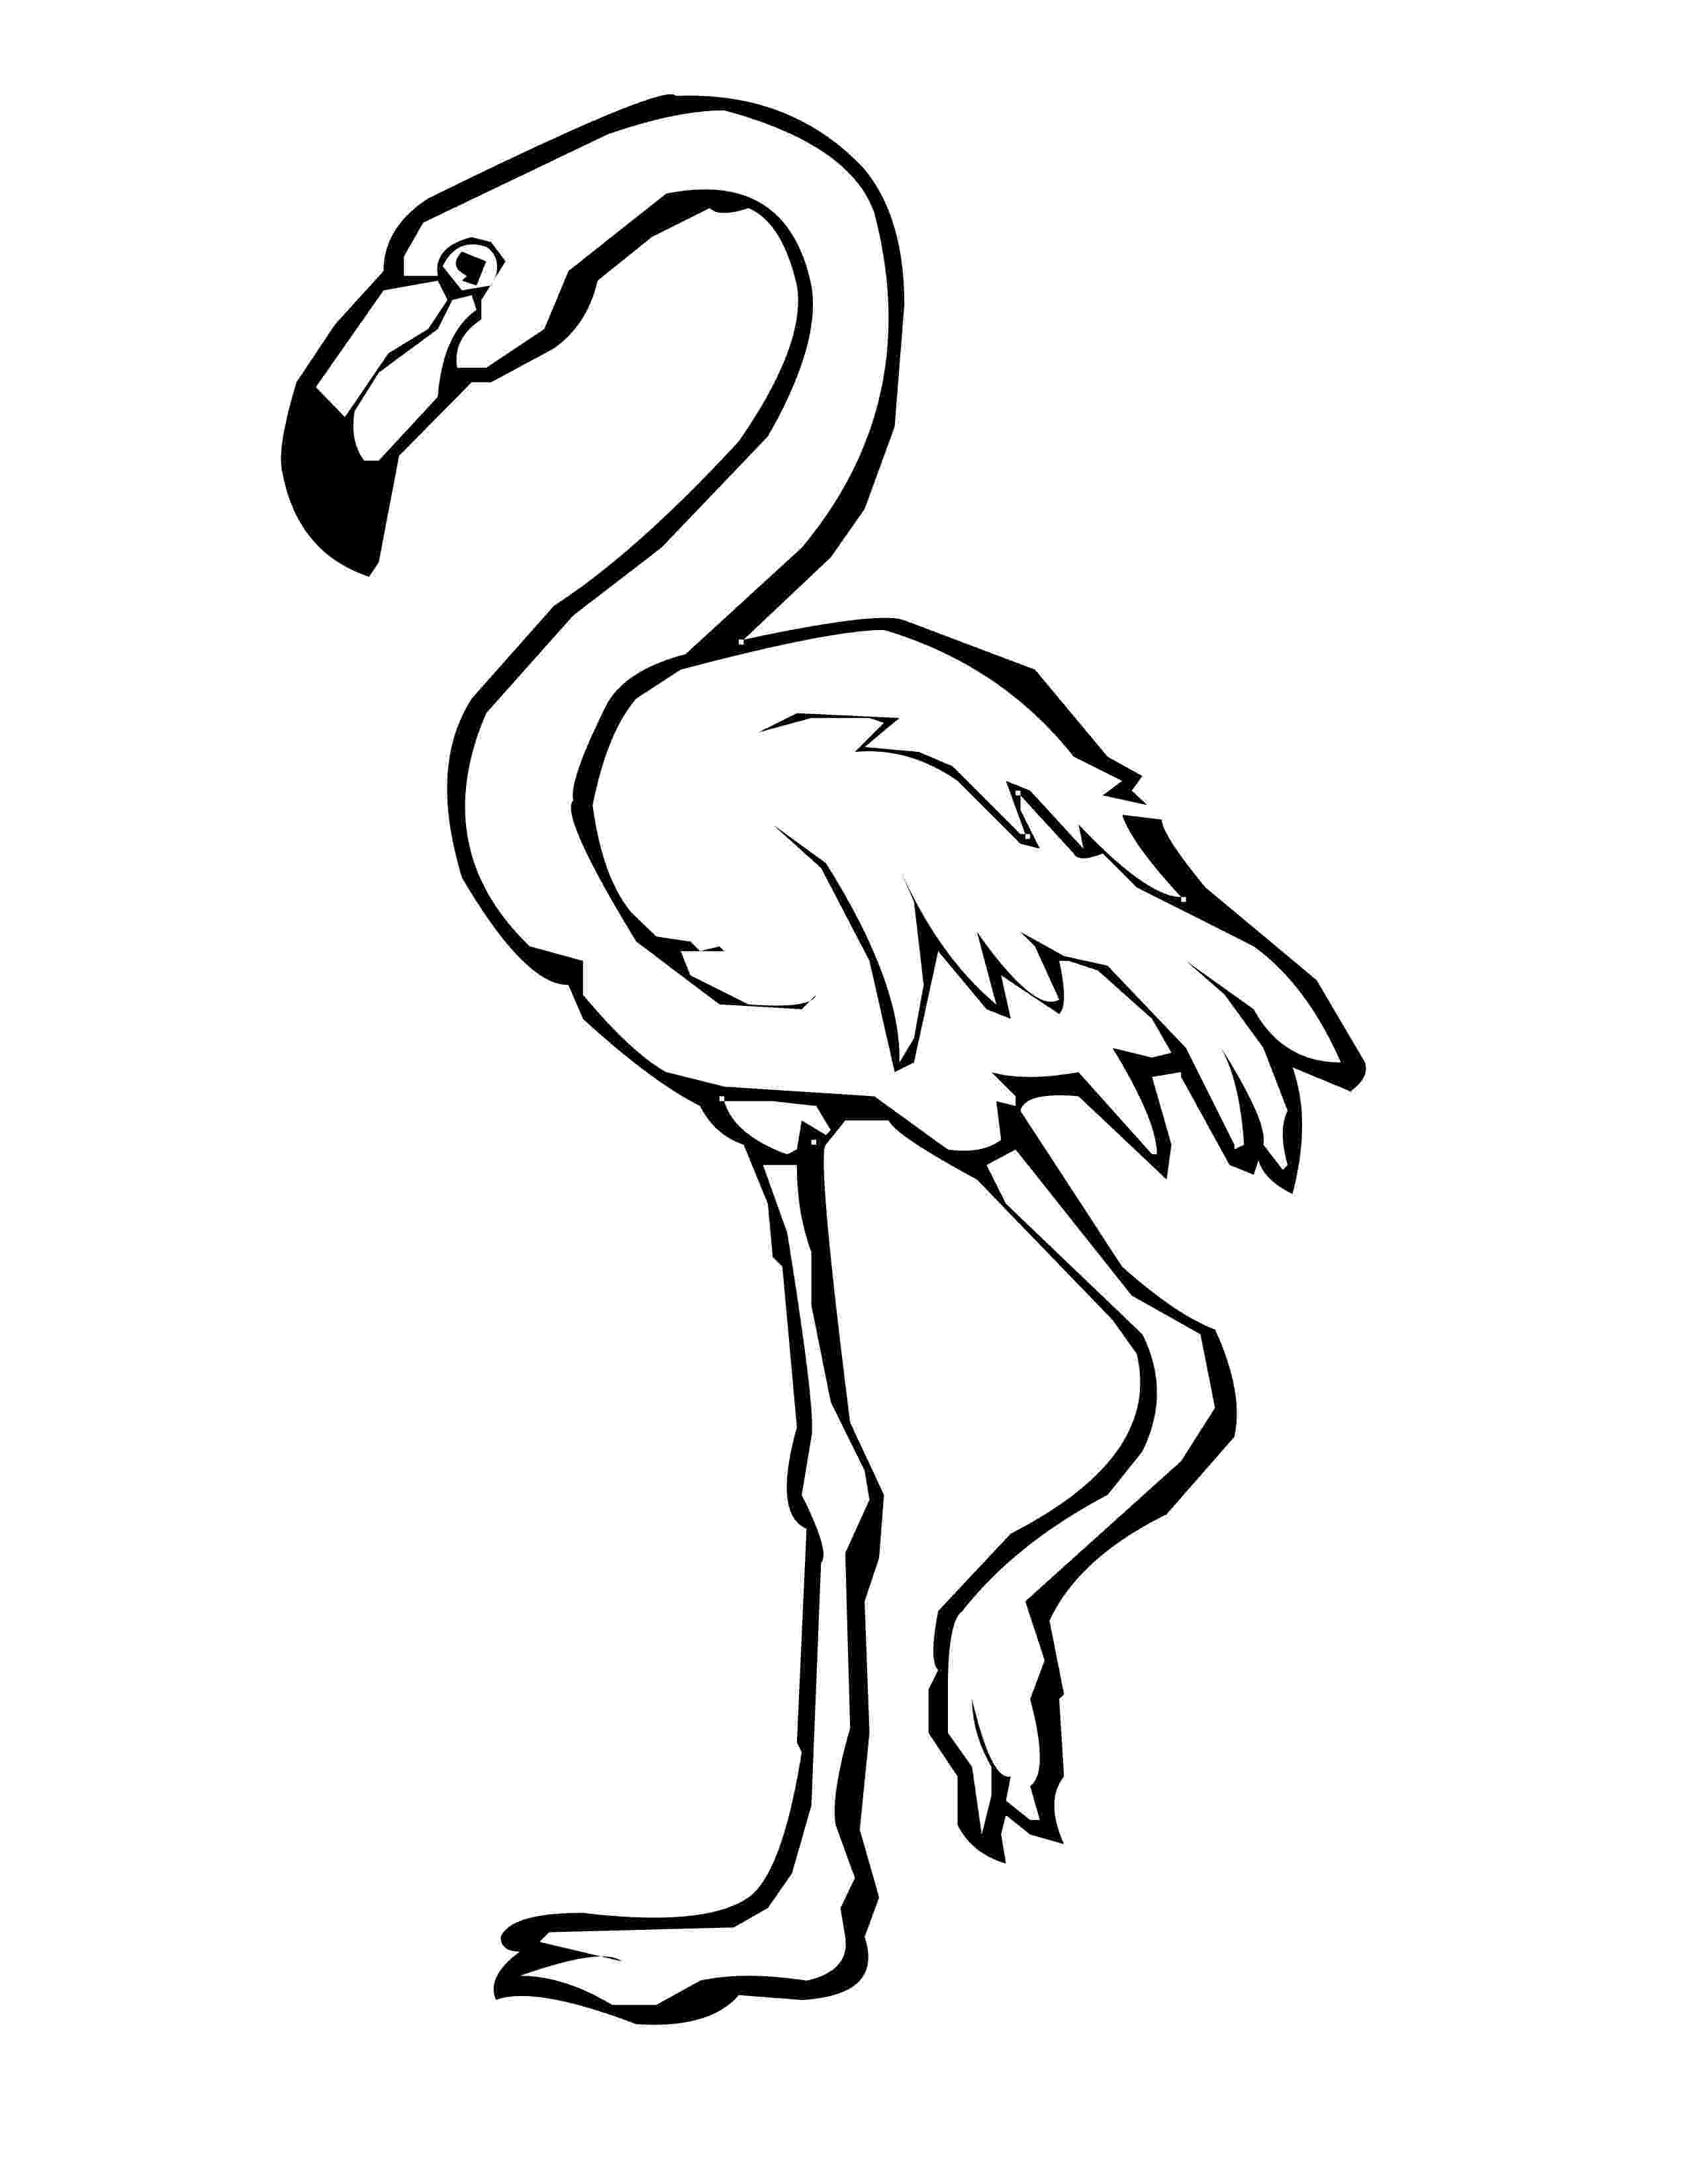 coloring pages flamingo flamingo coloring pages to download and print for free flamingo coloring pages